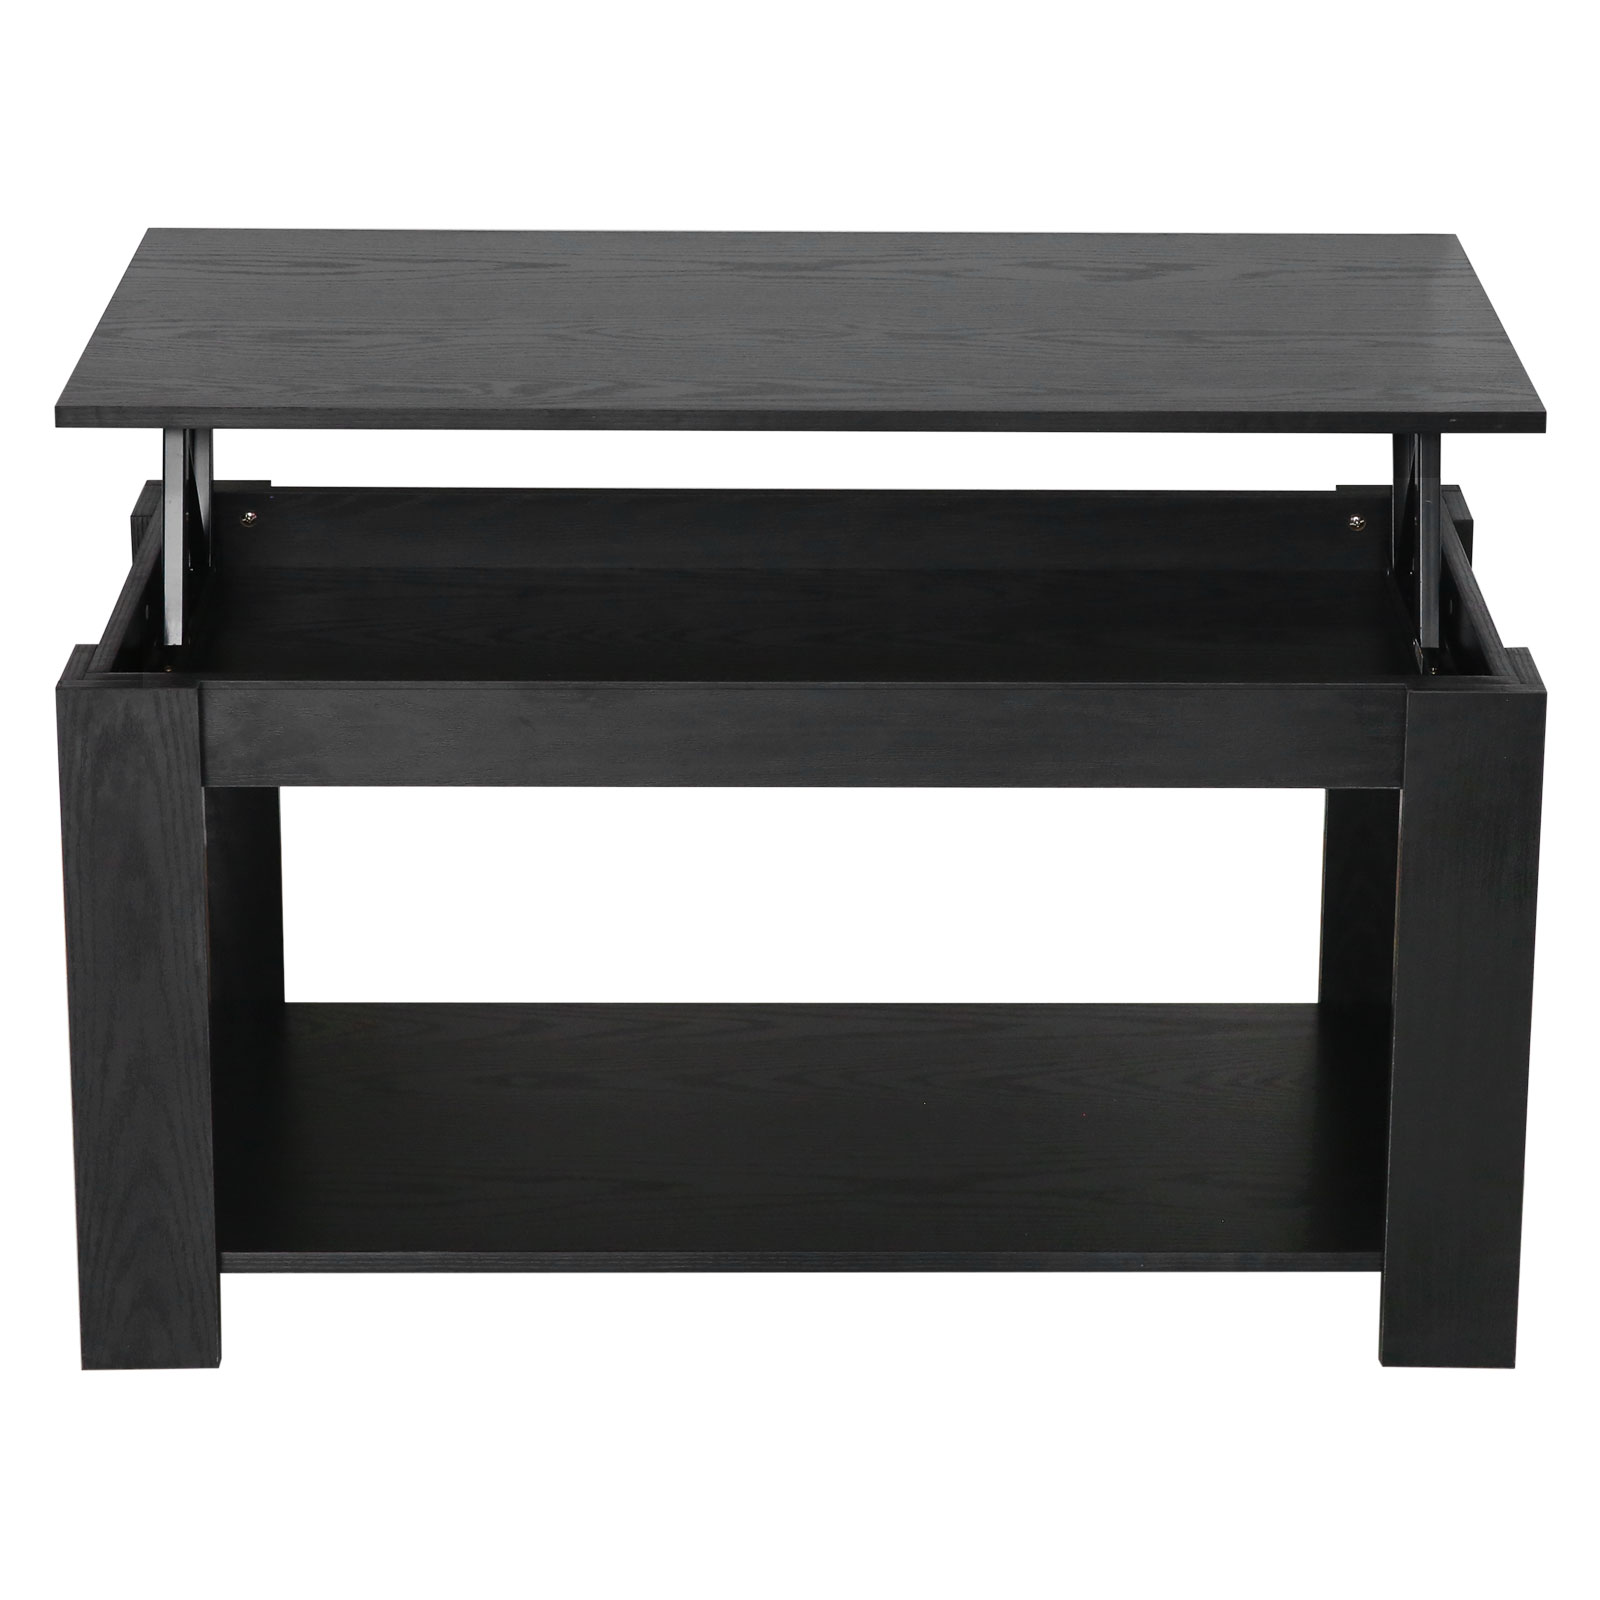 Lift Up Top Coffee Table Living Room Metal Hinge Wood